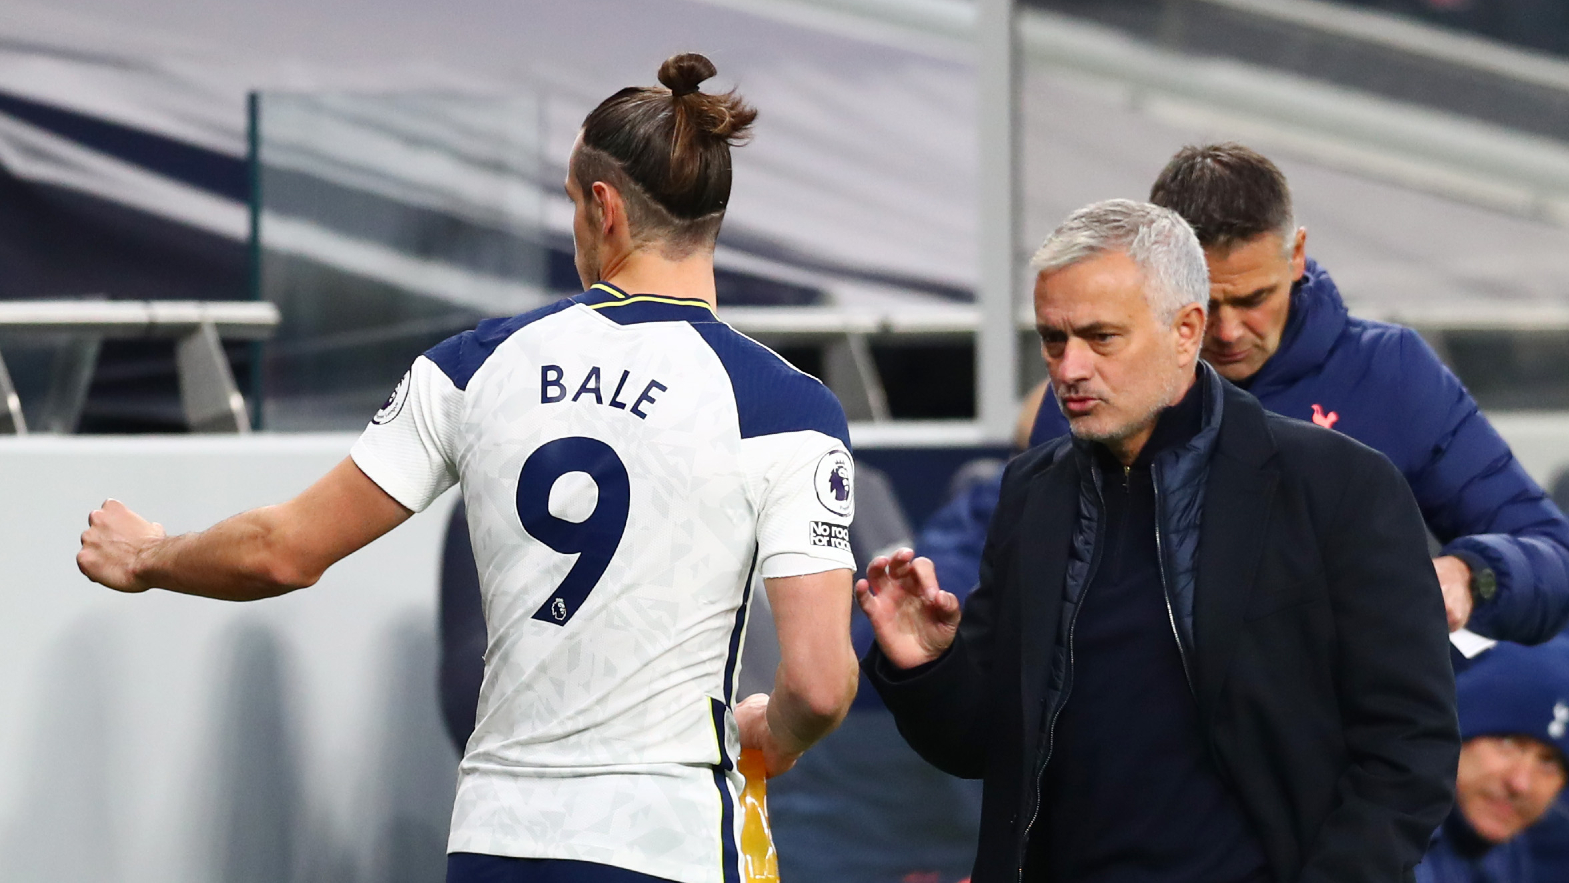 spurs bale must earn game time says mourinho